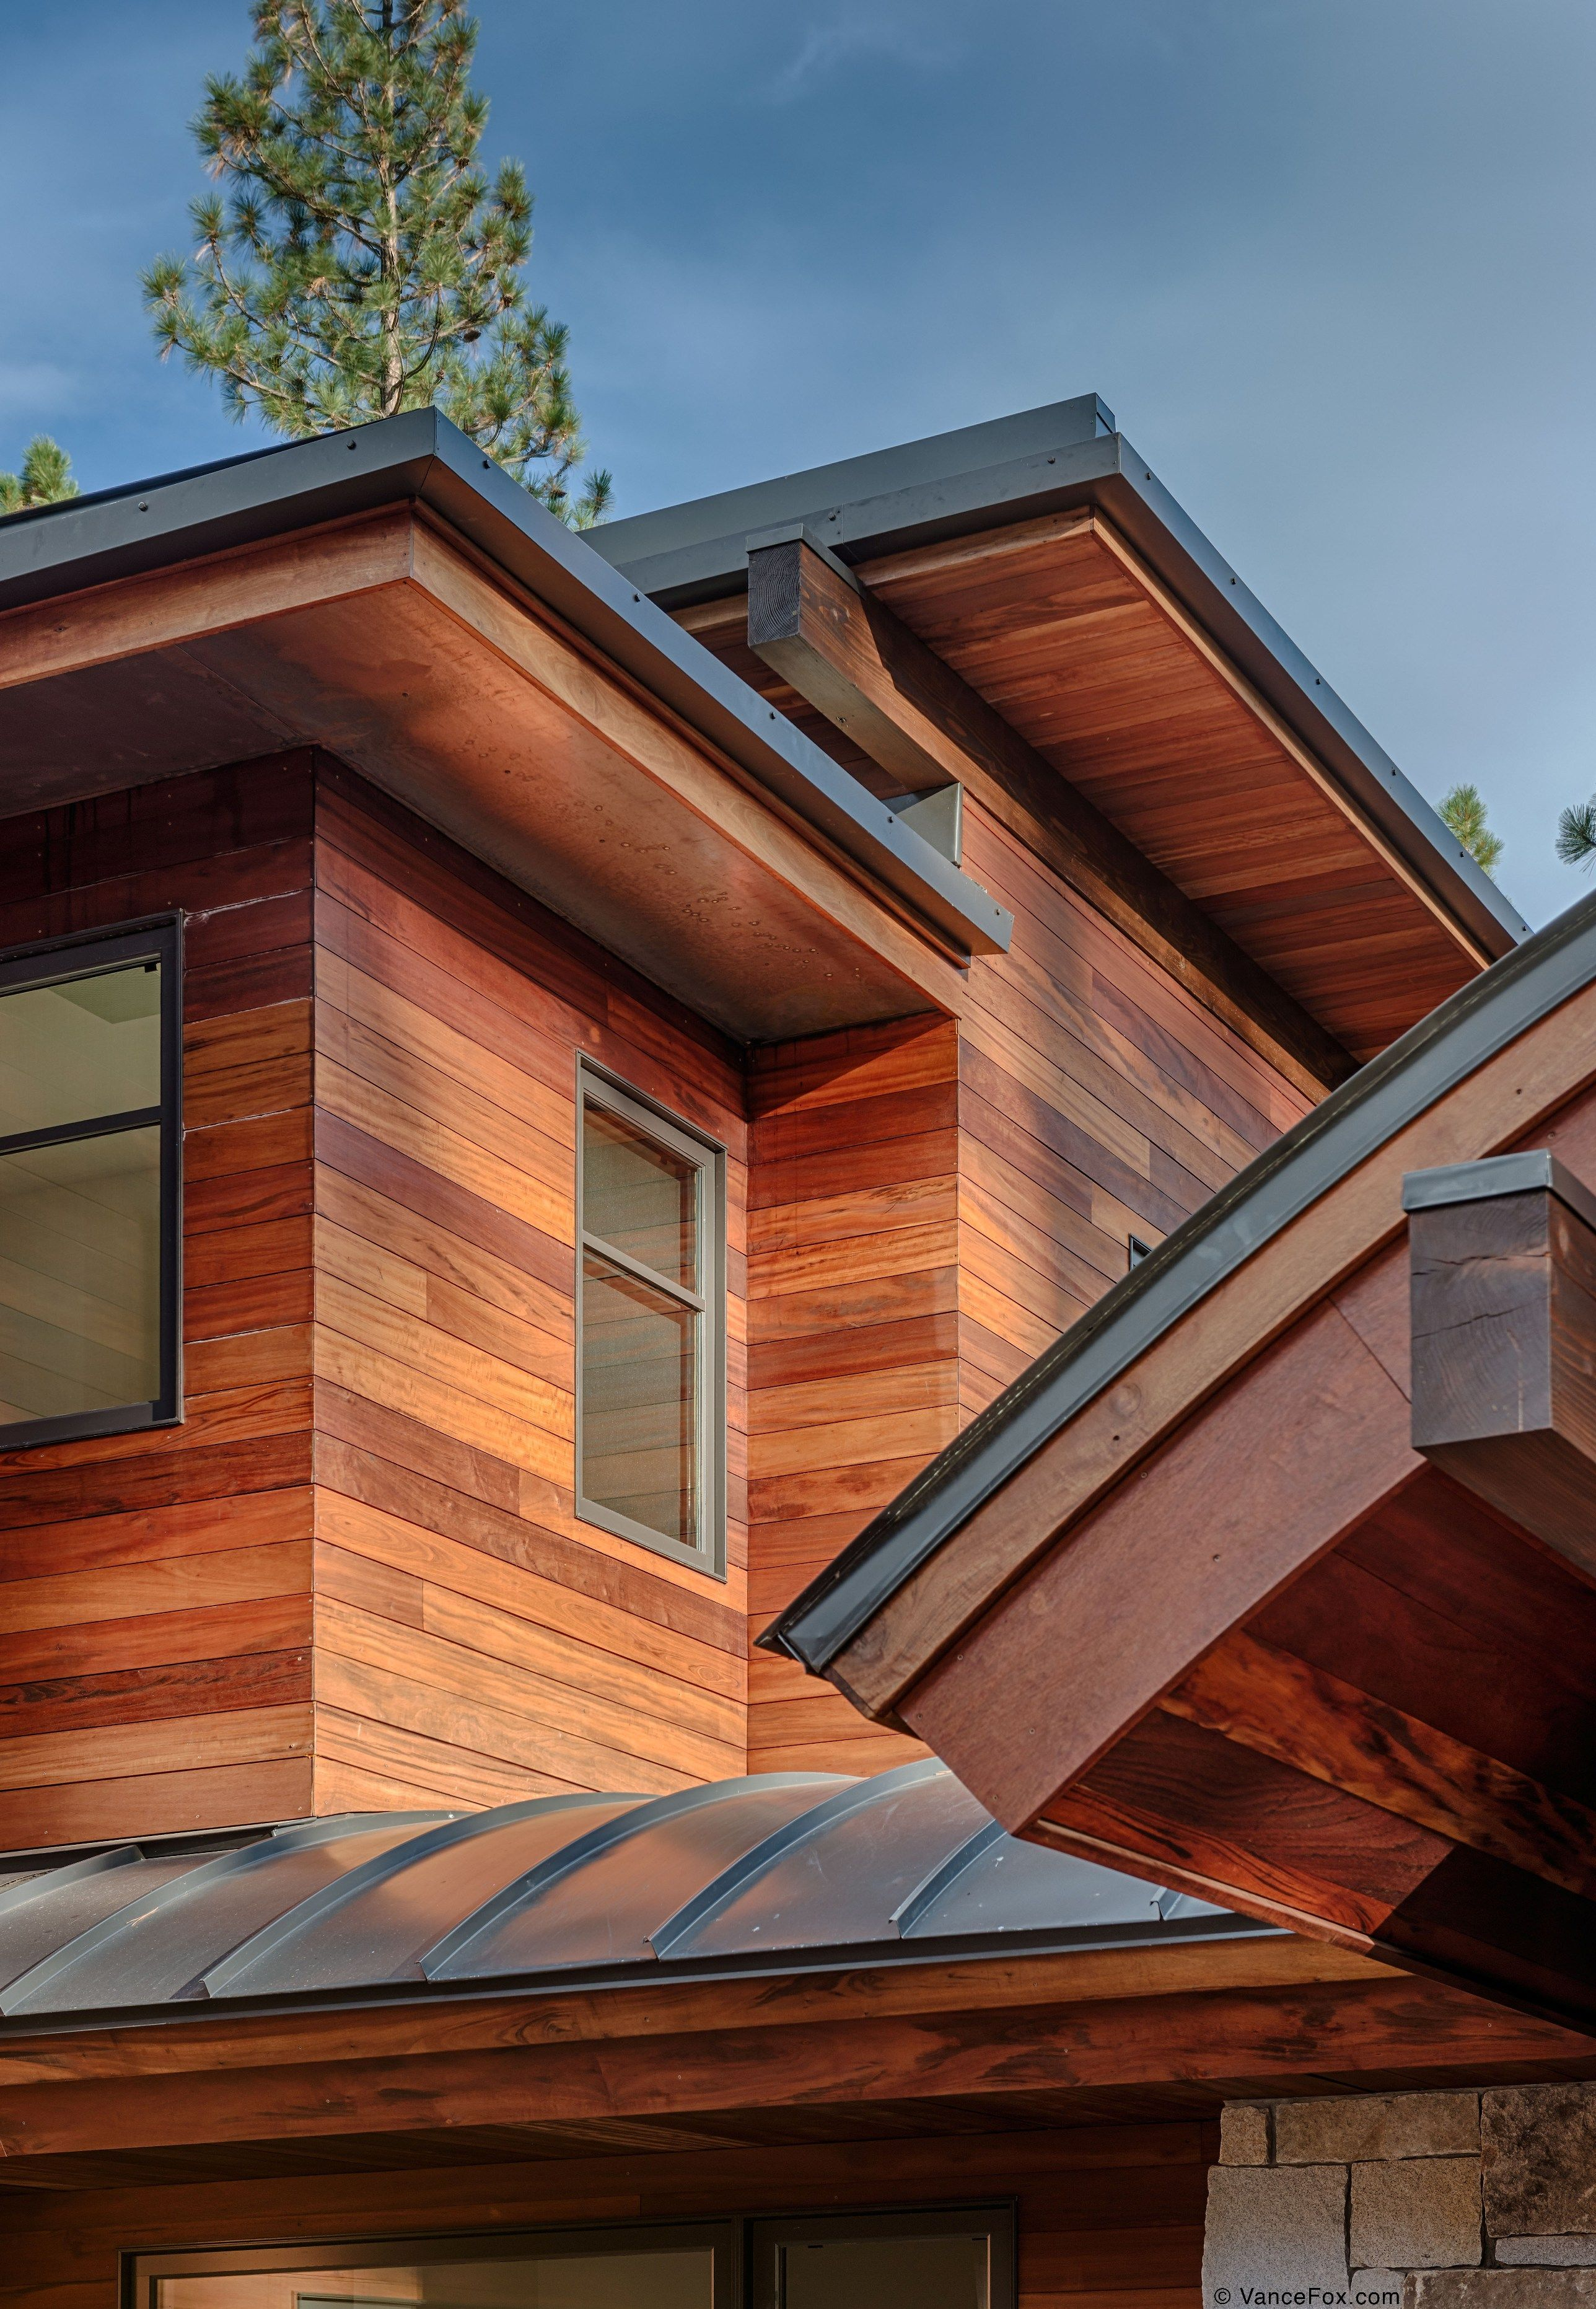 Contemporary Exterior Design Modern Wood Siding Modern House Exterior Elevation: Cabin With Tigerwood Siding In Truckee, CA. Built By NSM Construction.